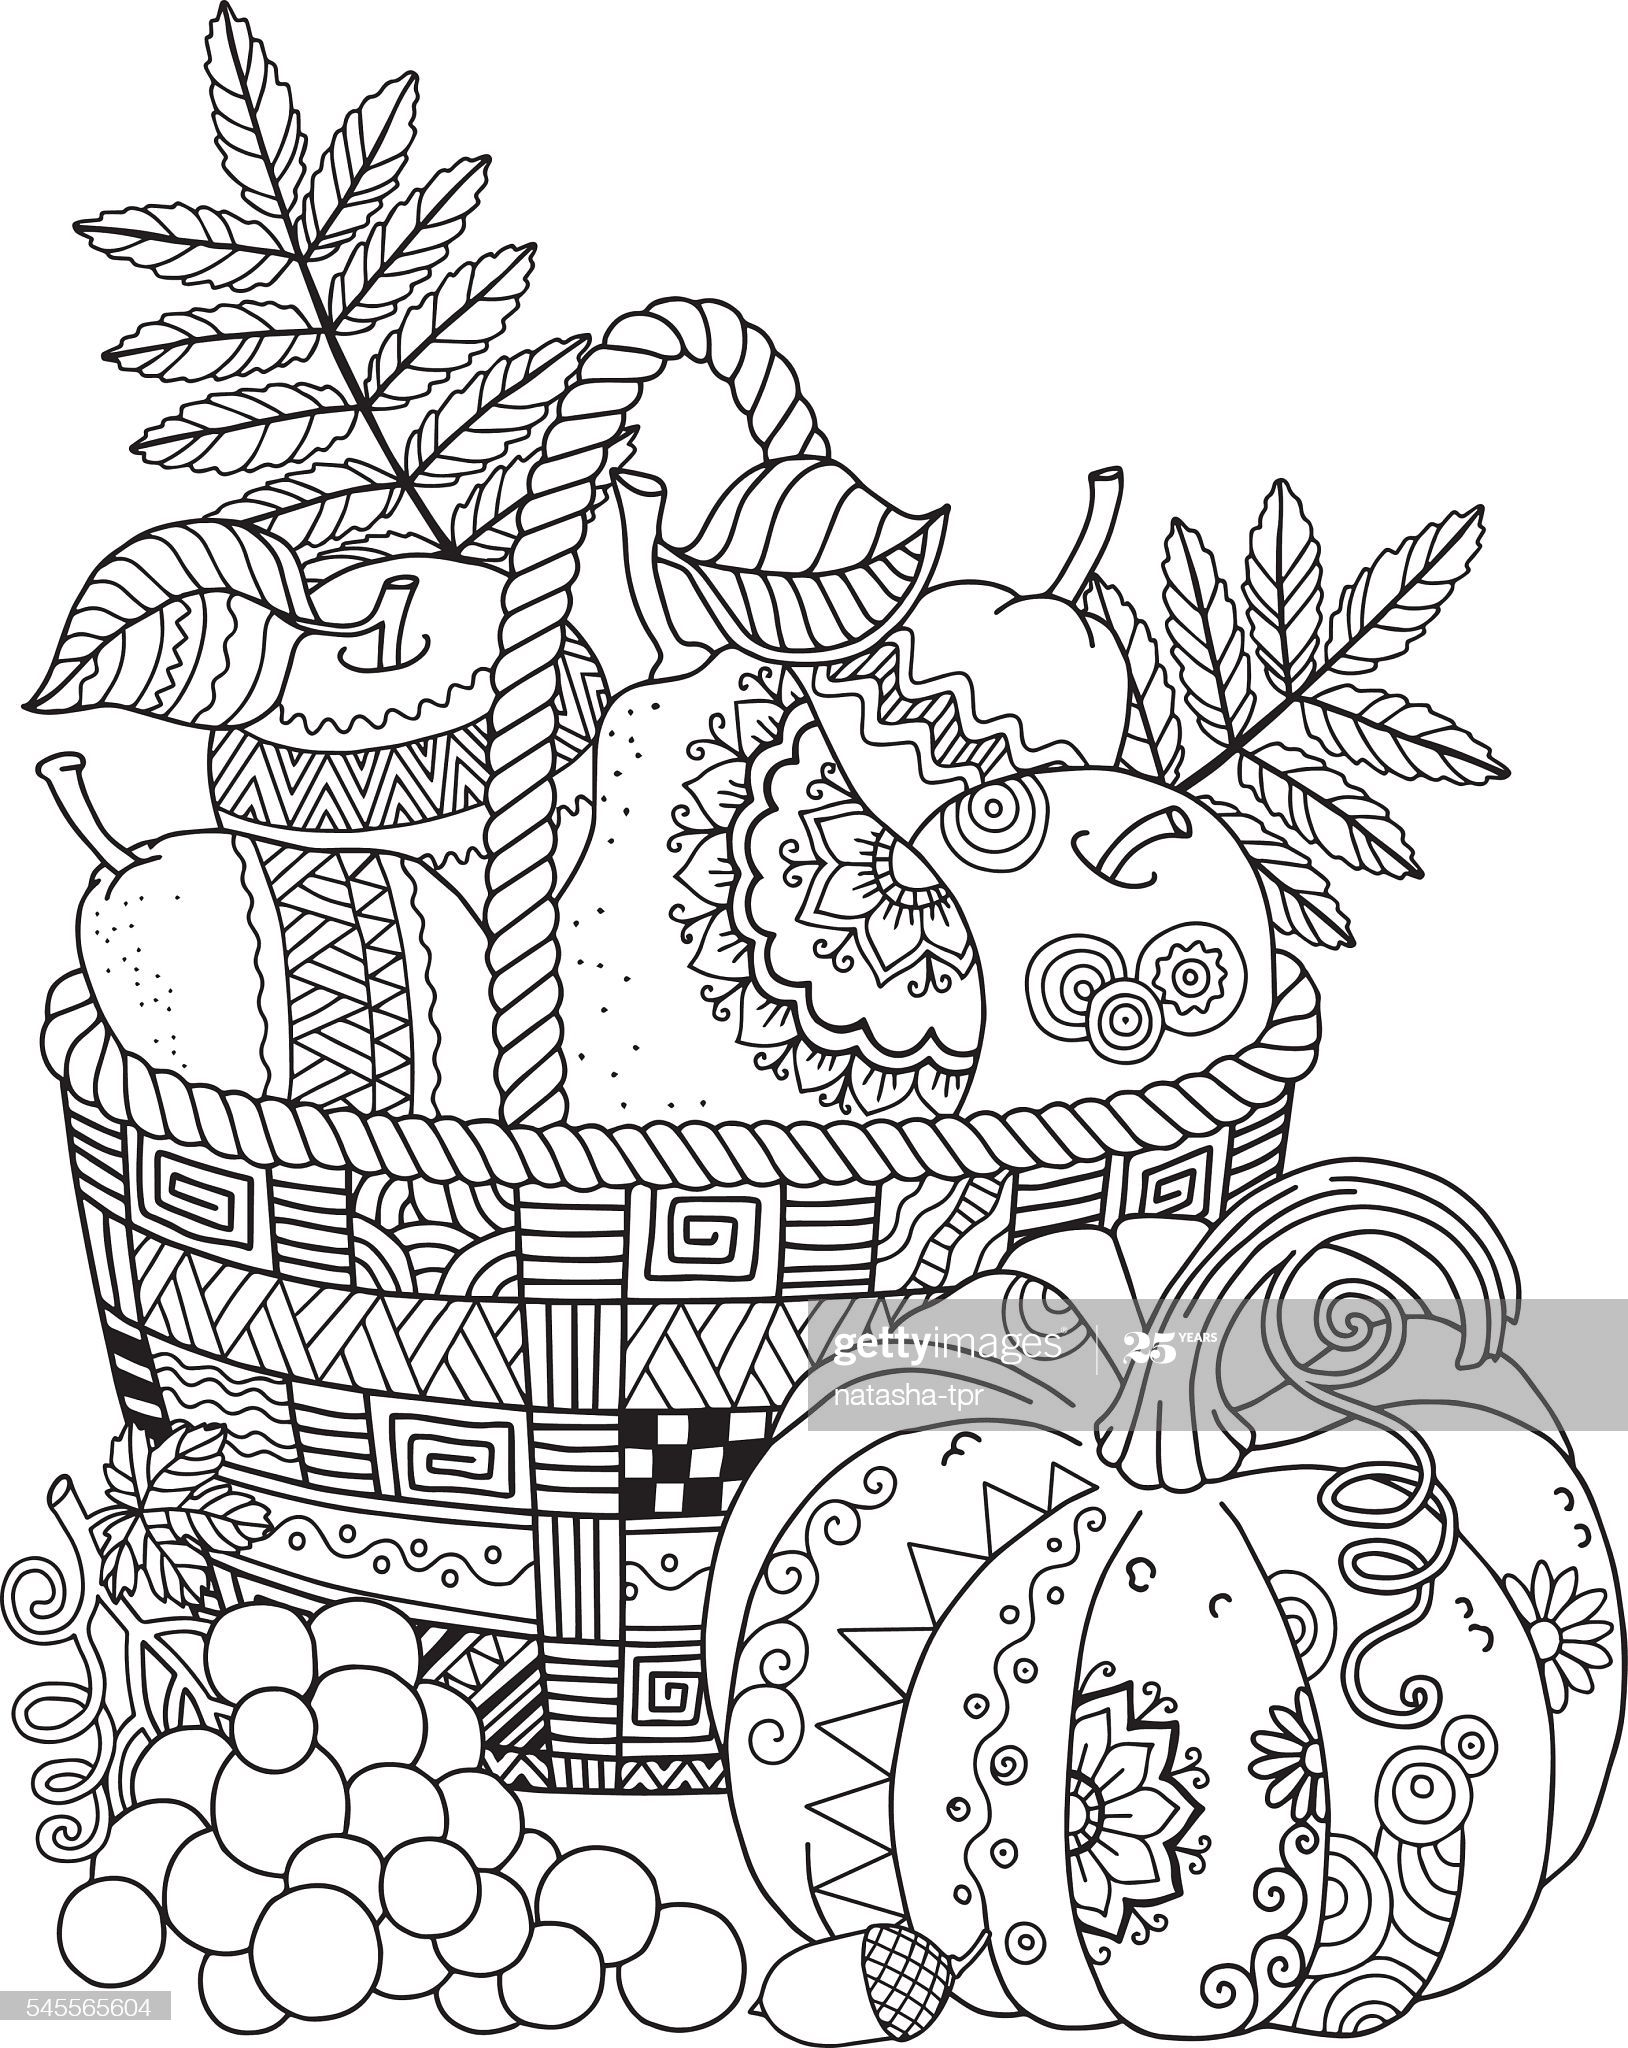 M And M Coloring Pages Luxury Inspirational Preschool Coloring Sheets Zaycu Fall Coloring Pages Pumpkin Coloring Pages Animal Coloring Pages